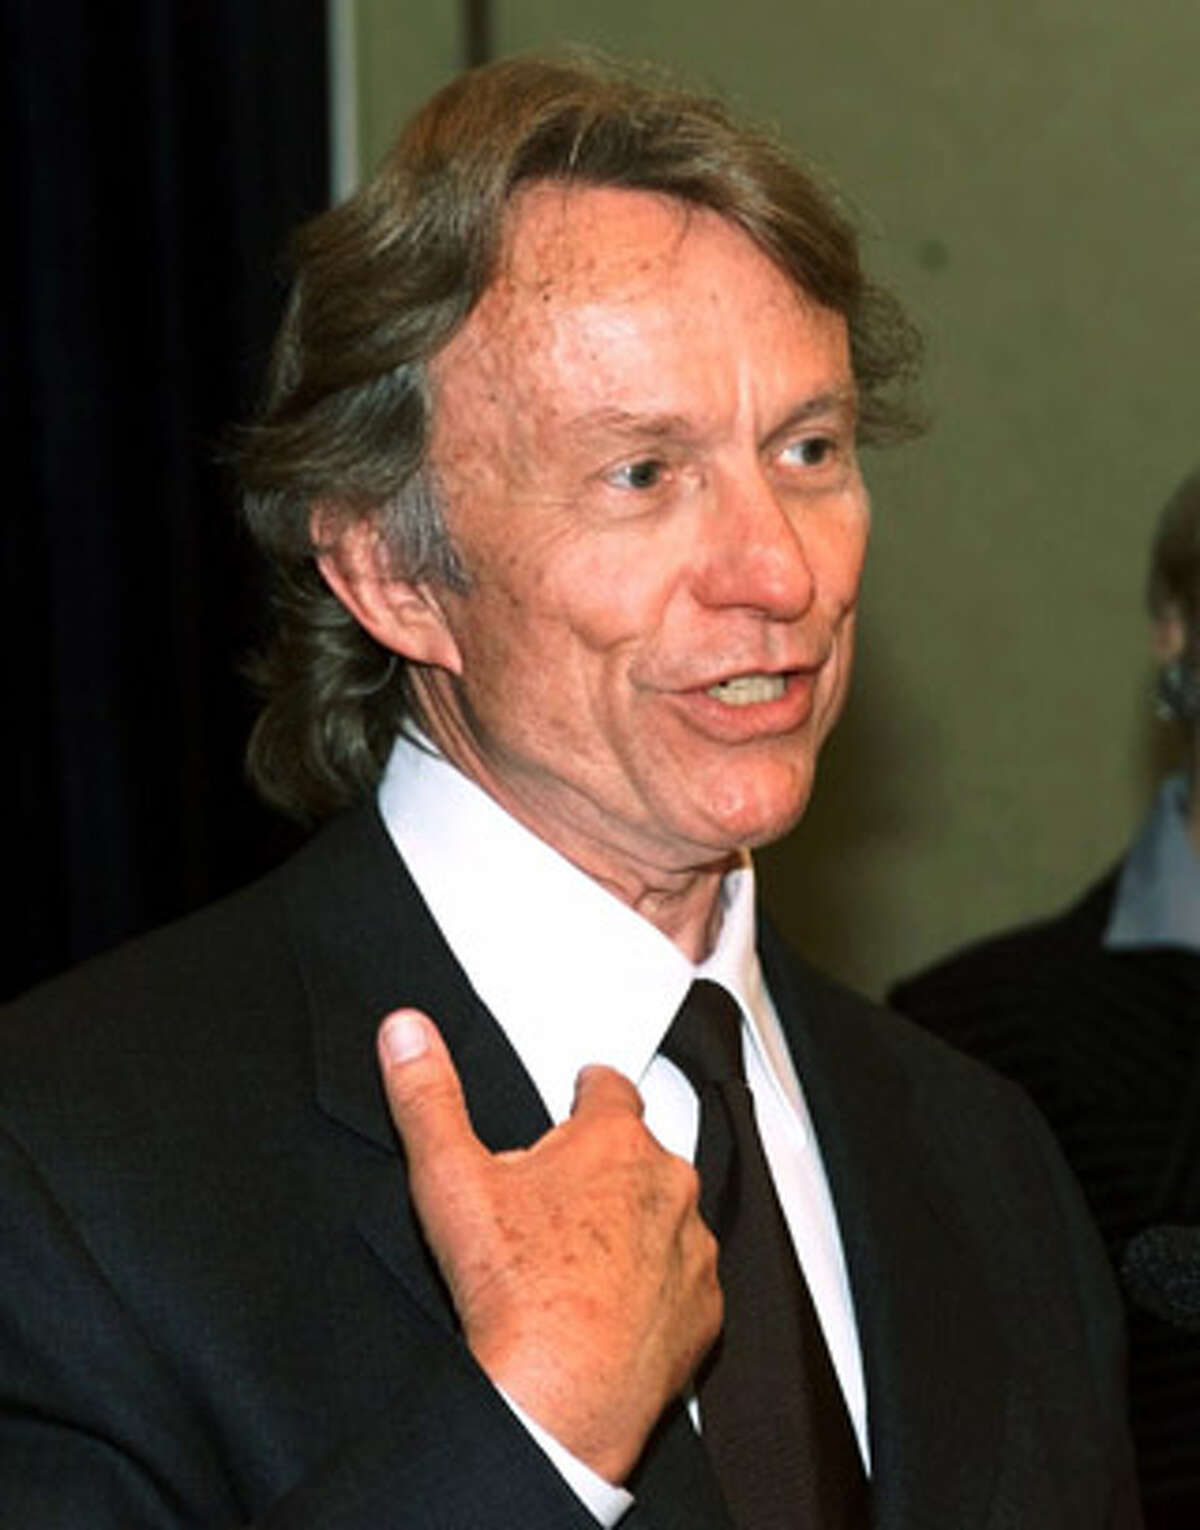 Sam Wyly is one of the billionaires cited in the Senate report on high-level tax schemes.